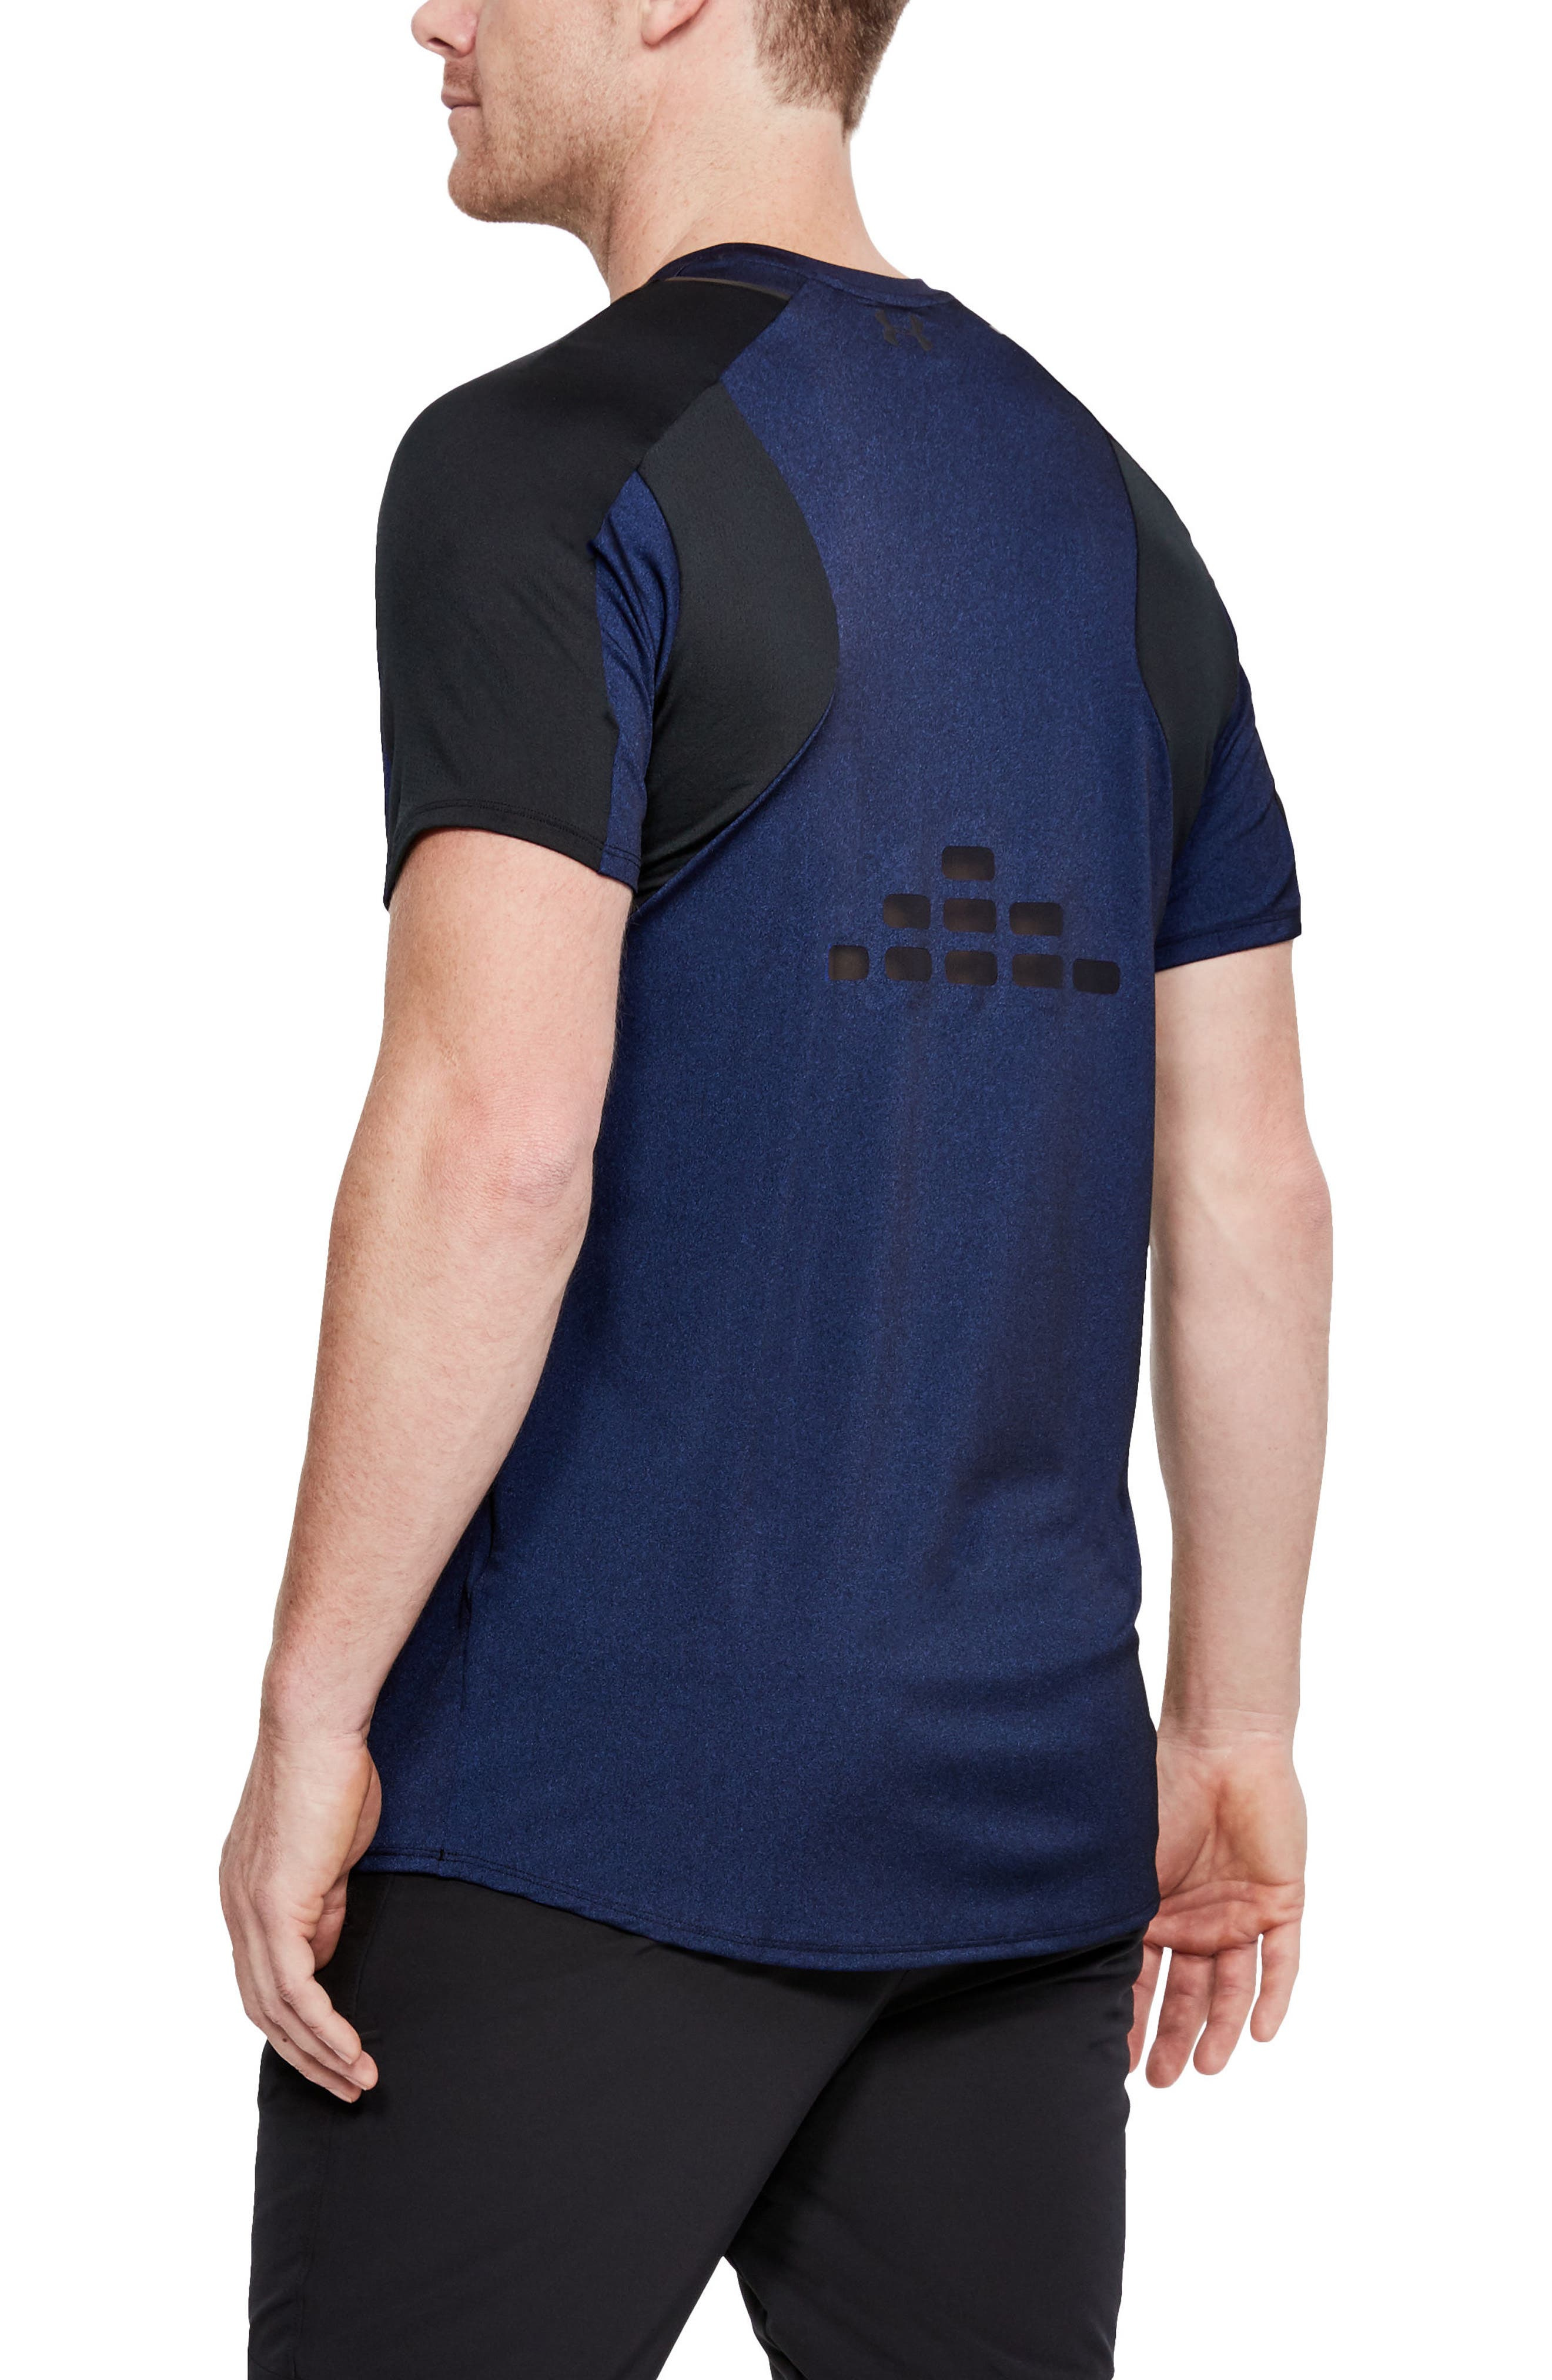 Perpetual Fitted Shirt,                             Alternate thumbnail 2, color,                             FORMATION BLUE/ BLACK